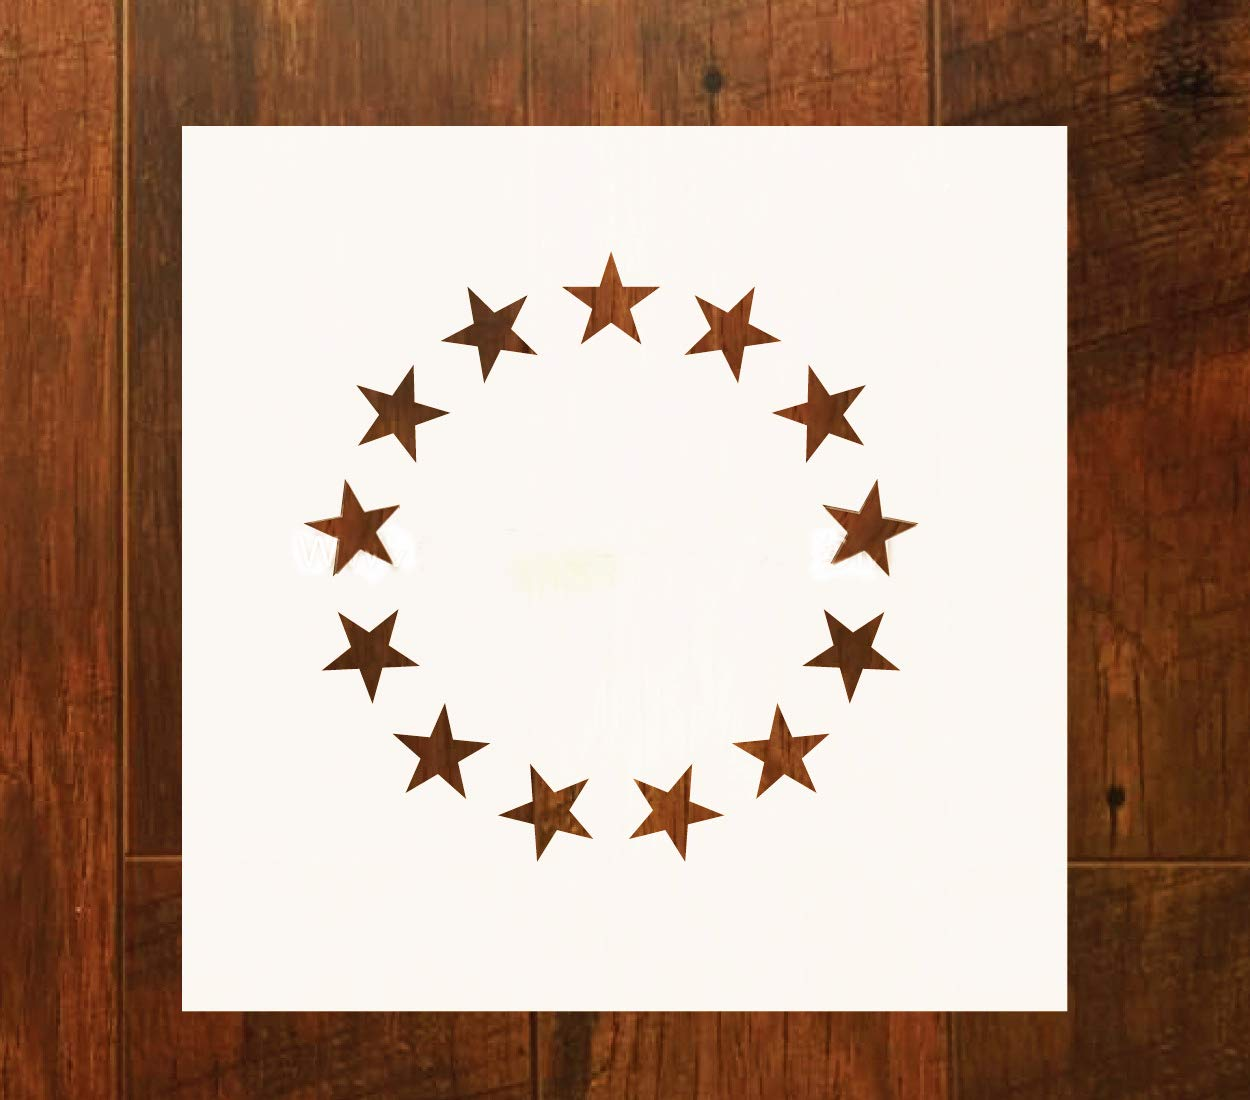 OBUY Betsy Ross Flag 13 Star Stencil for Painting on Wood, Walls, Fabric, Airbrush, More   Reusable 12 x 12 inch Mylar Template